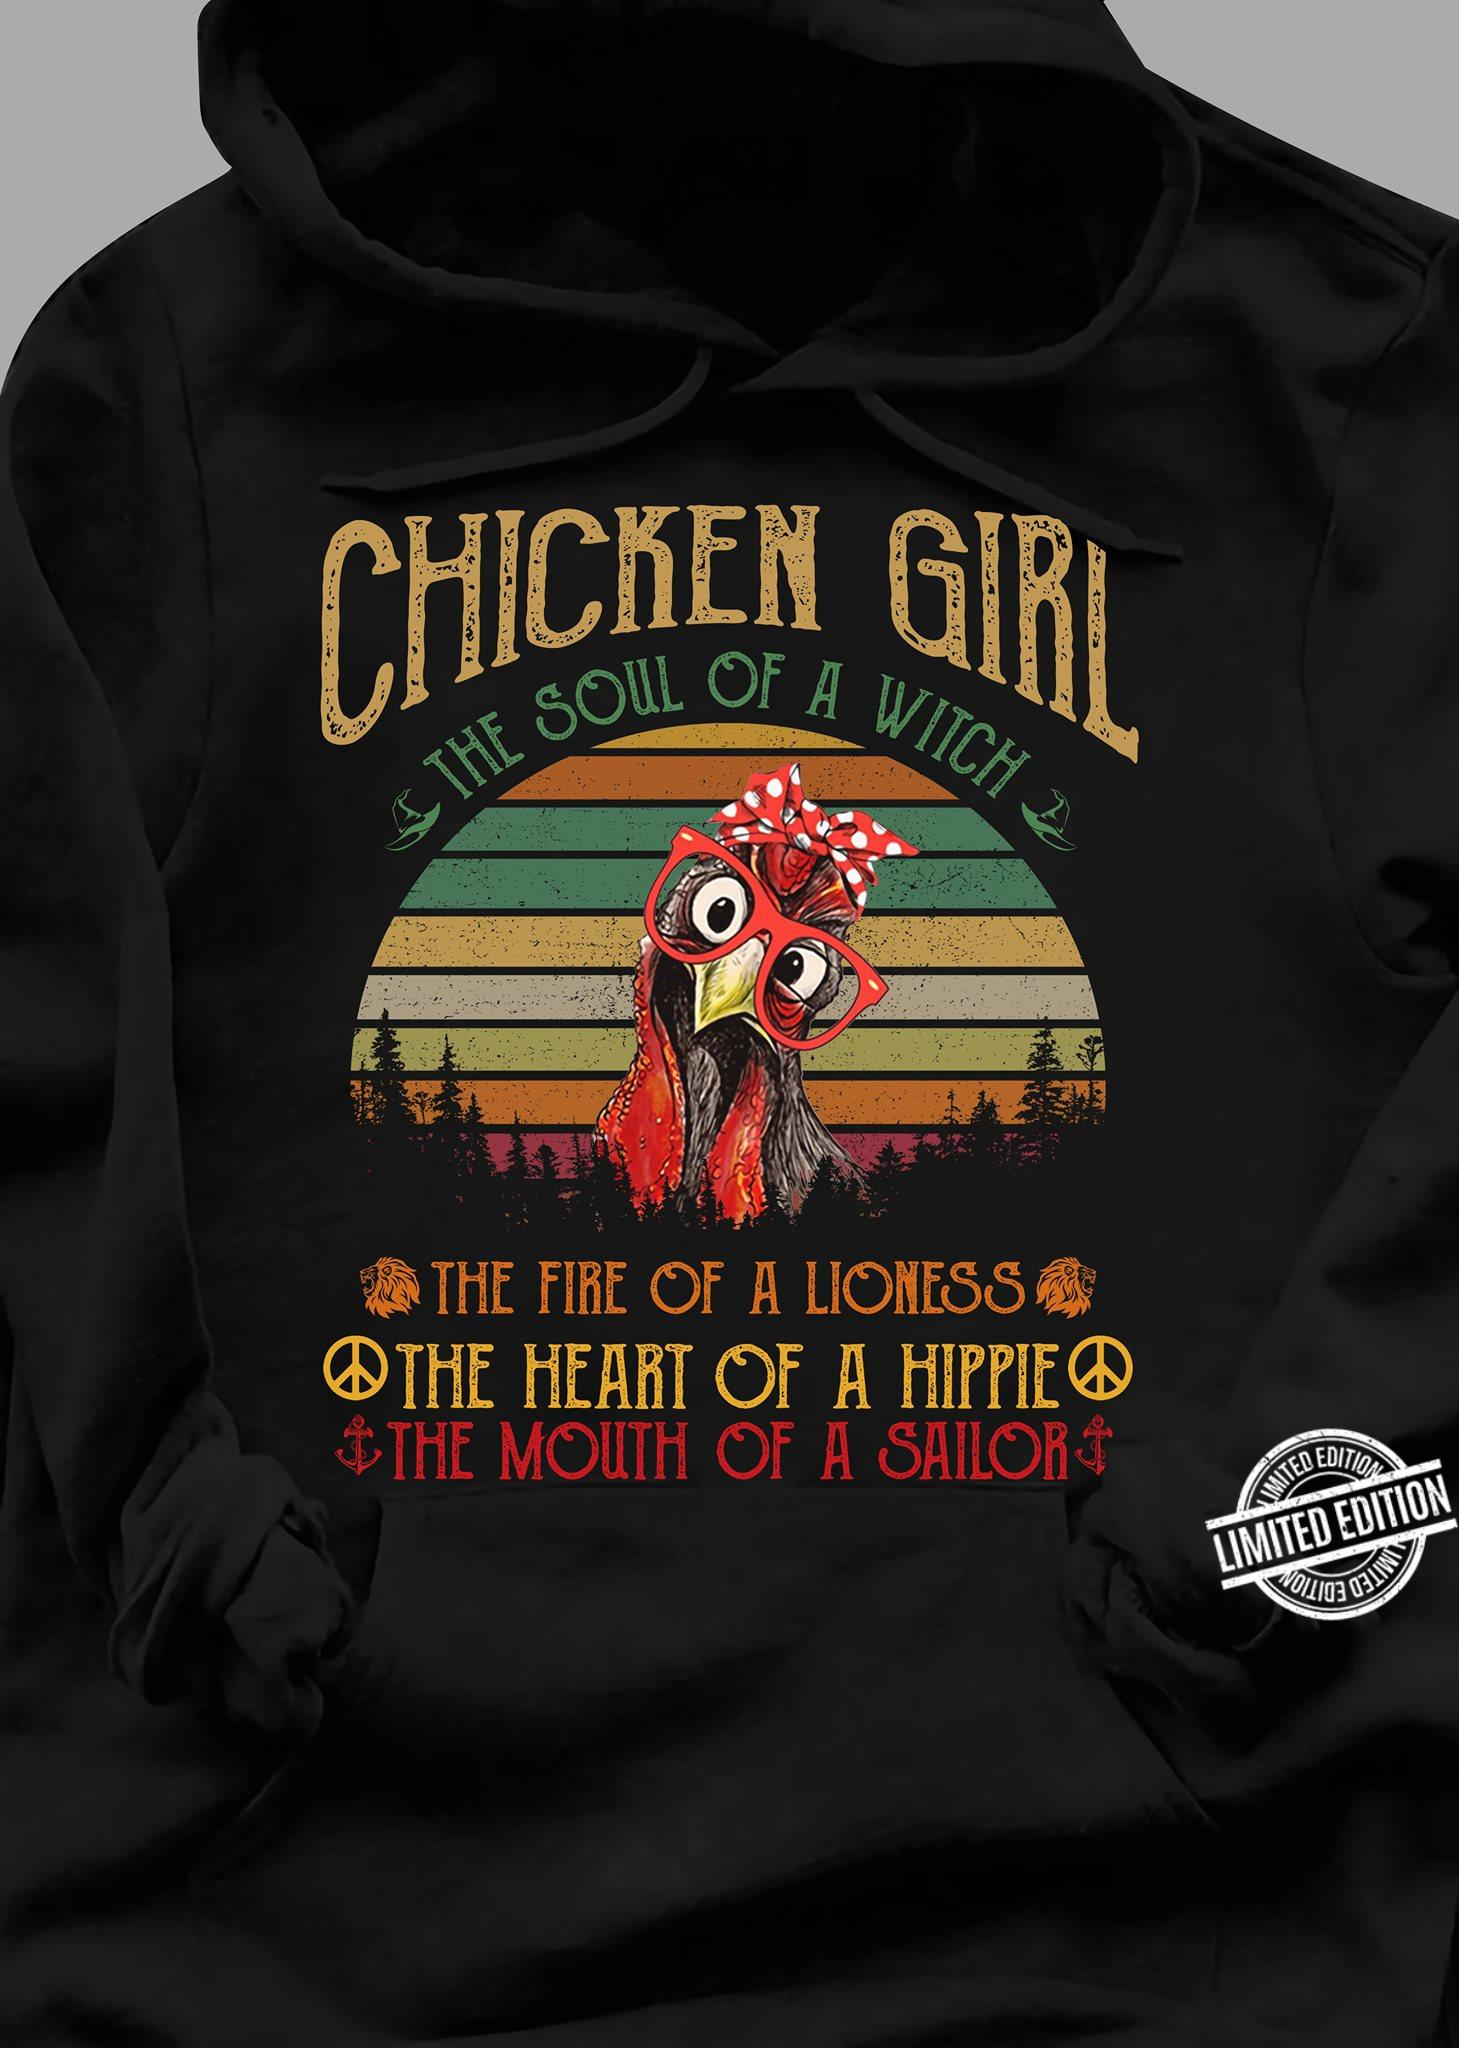 Chicken Girl The Soul Of A Witch Shirt